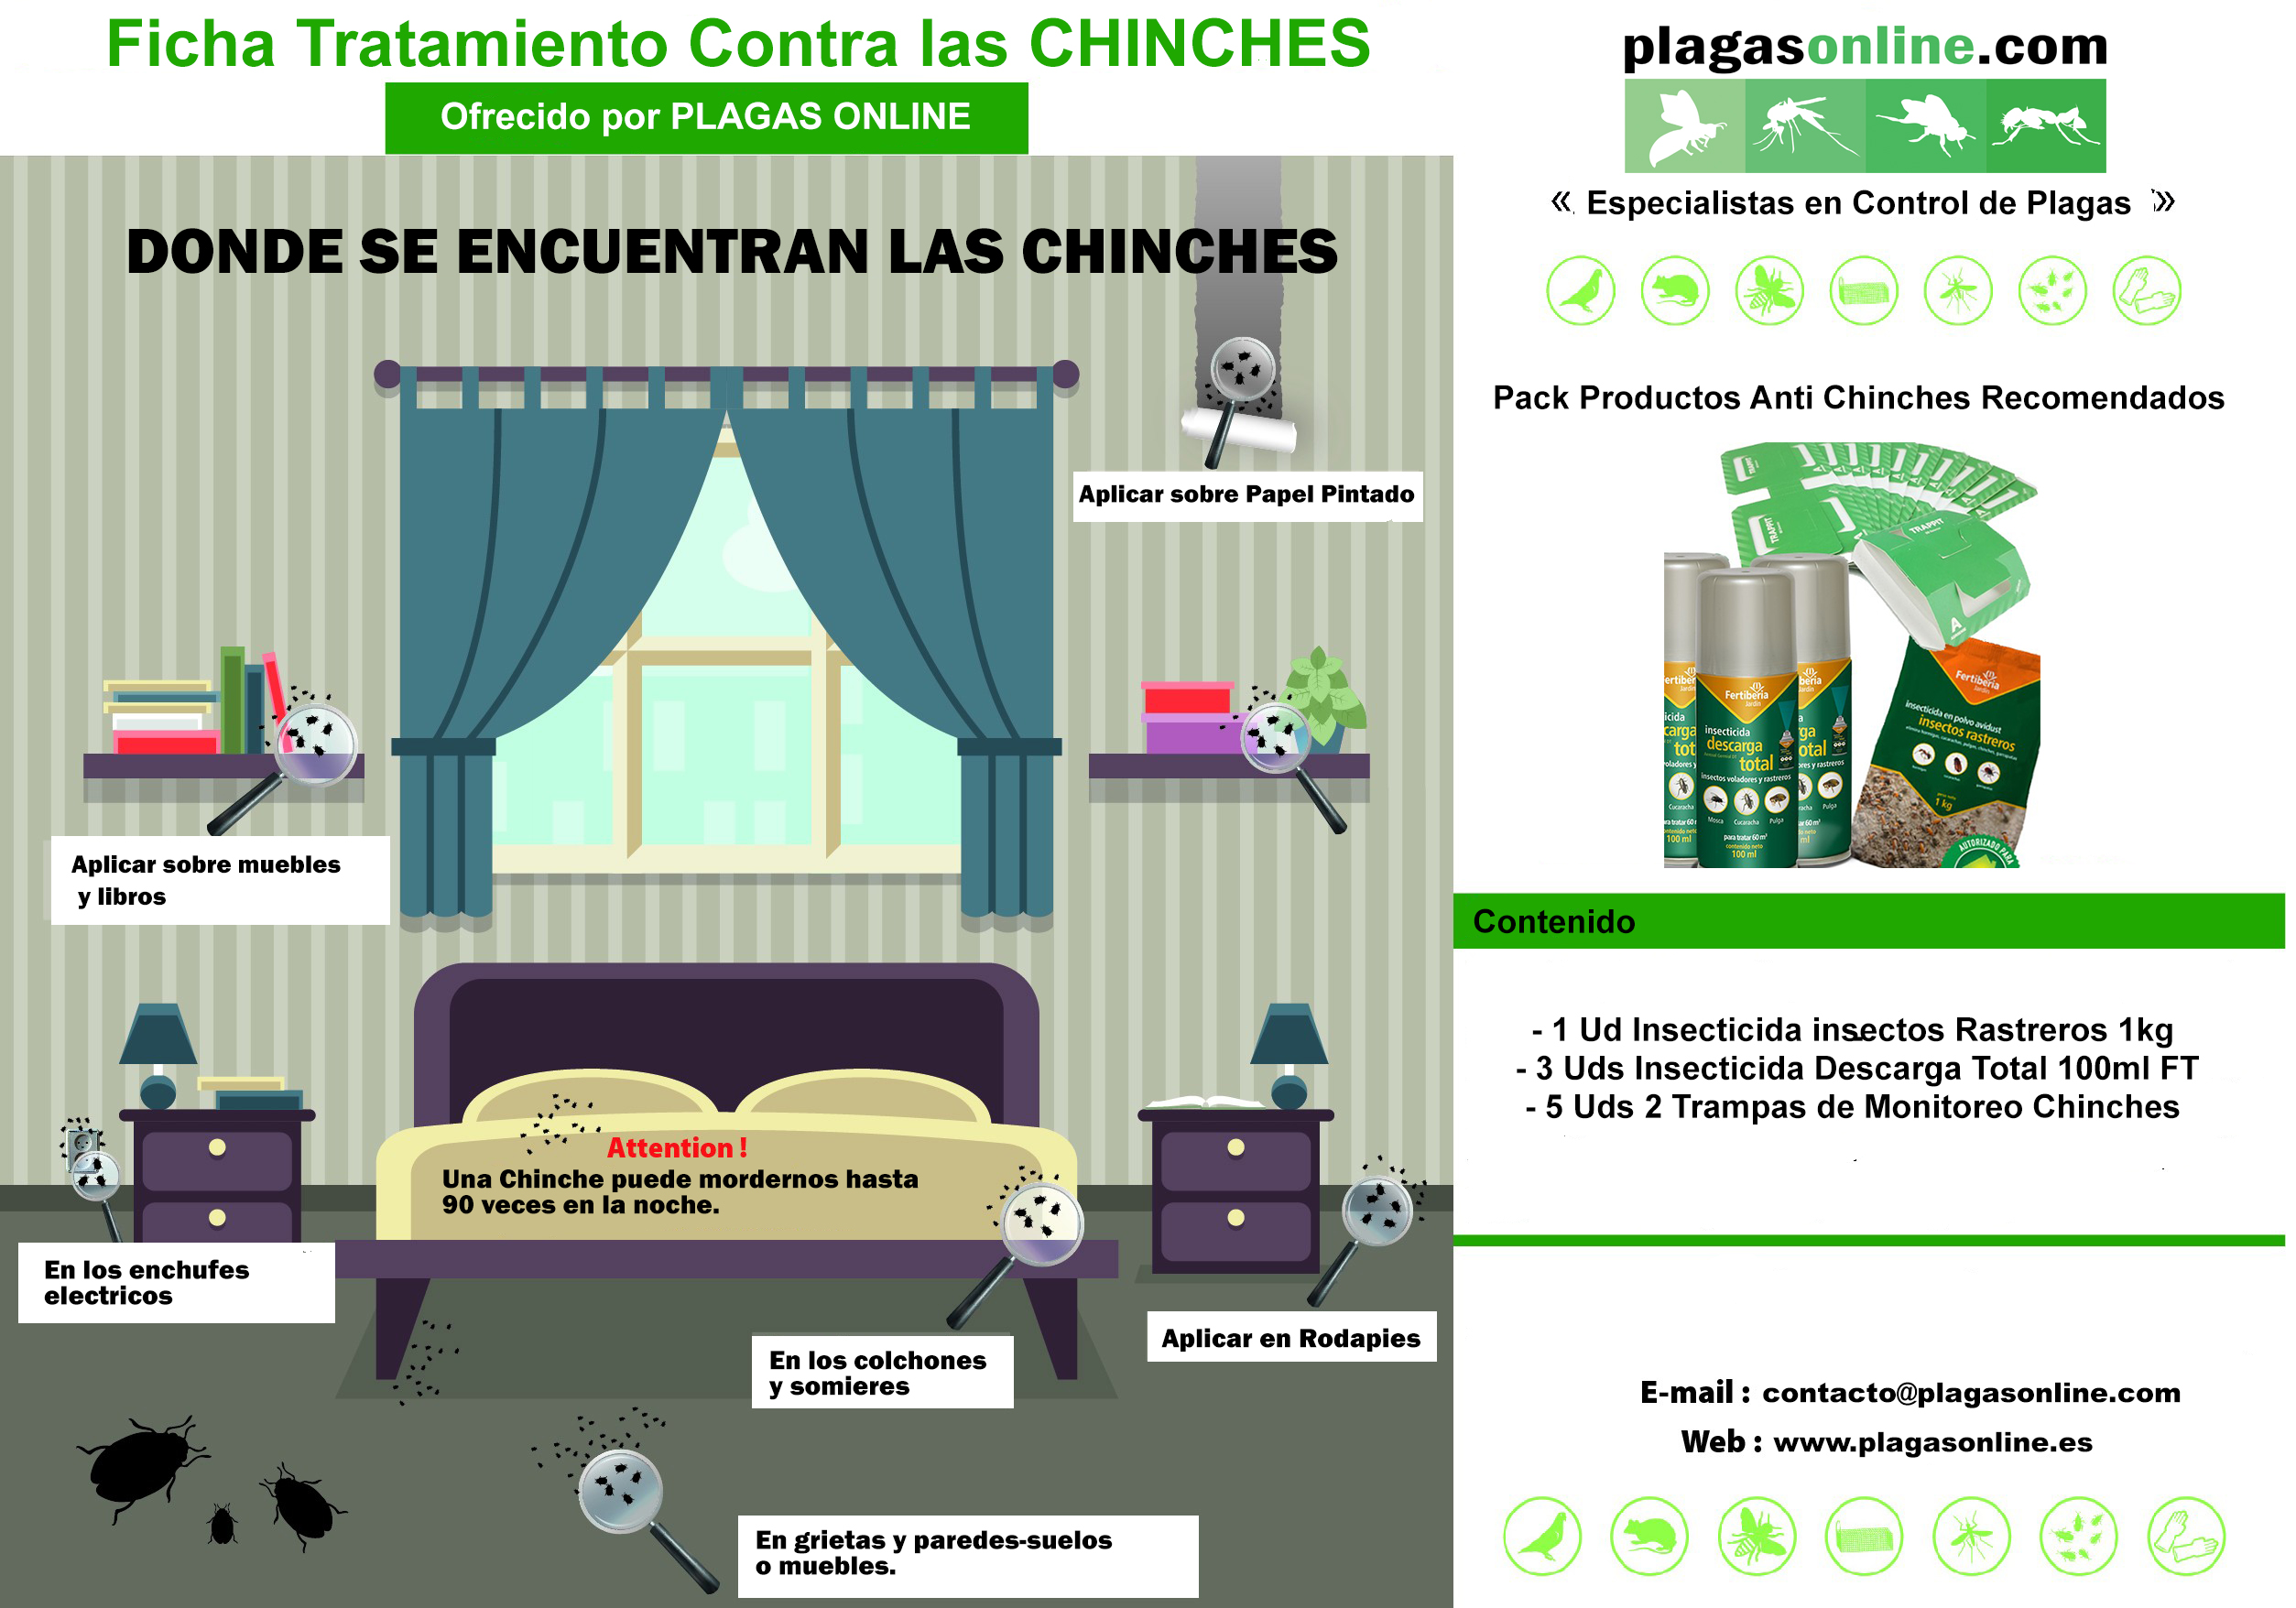 Tratamiento anti chinches